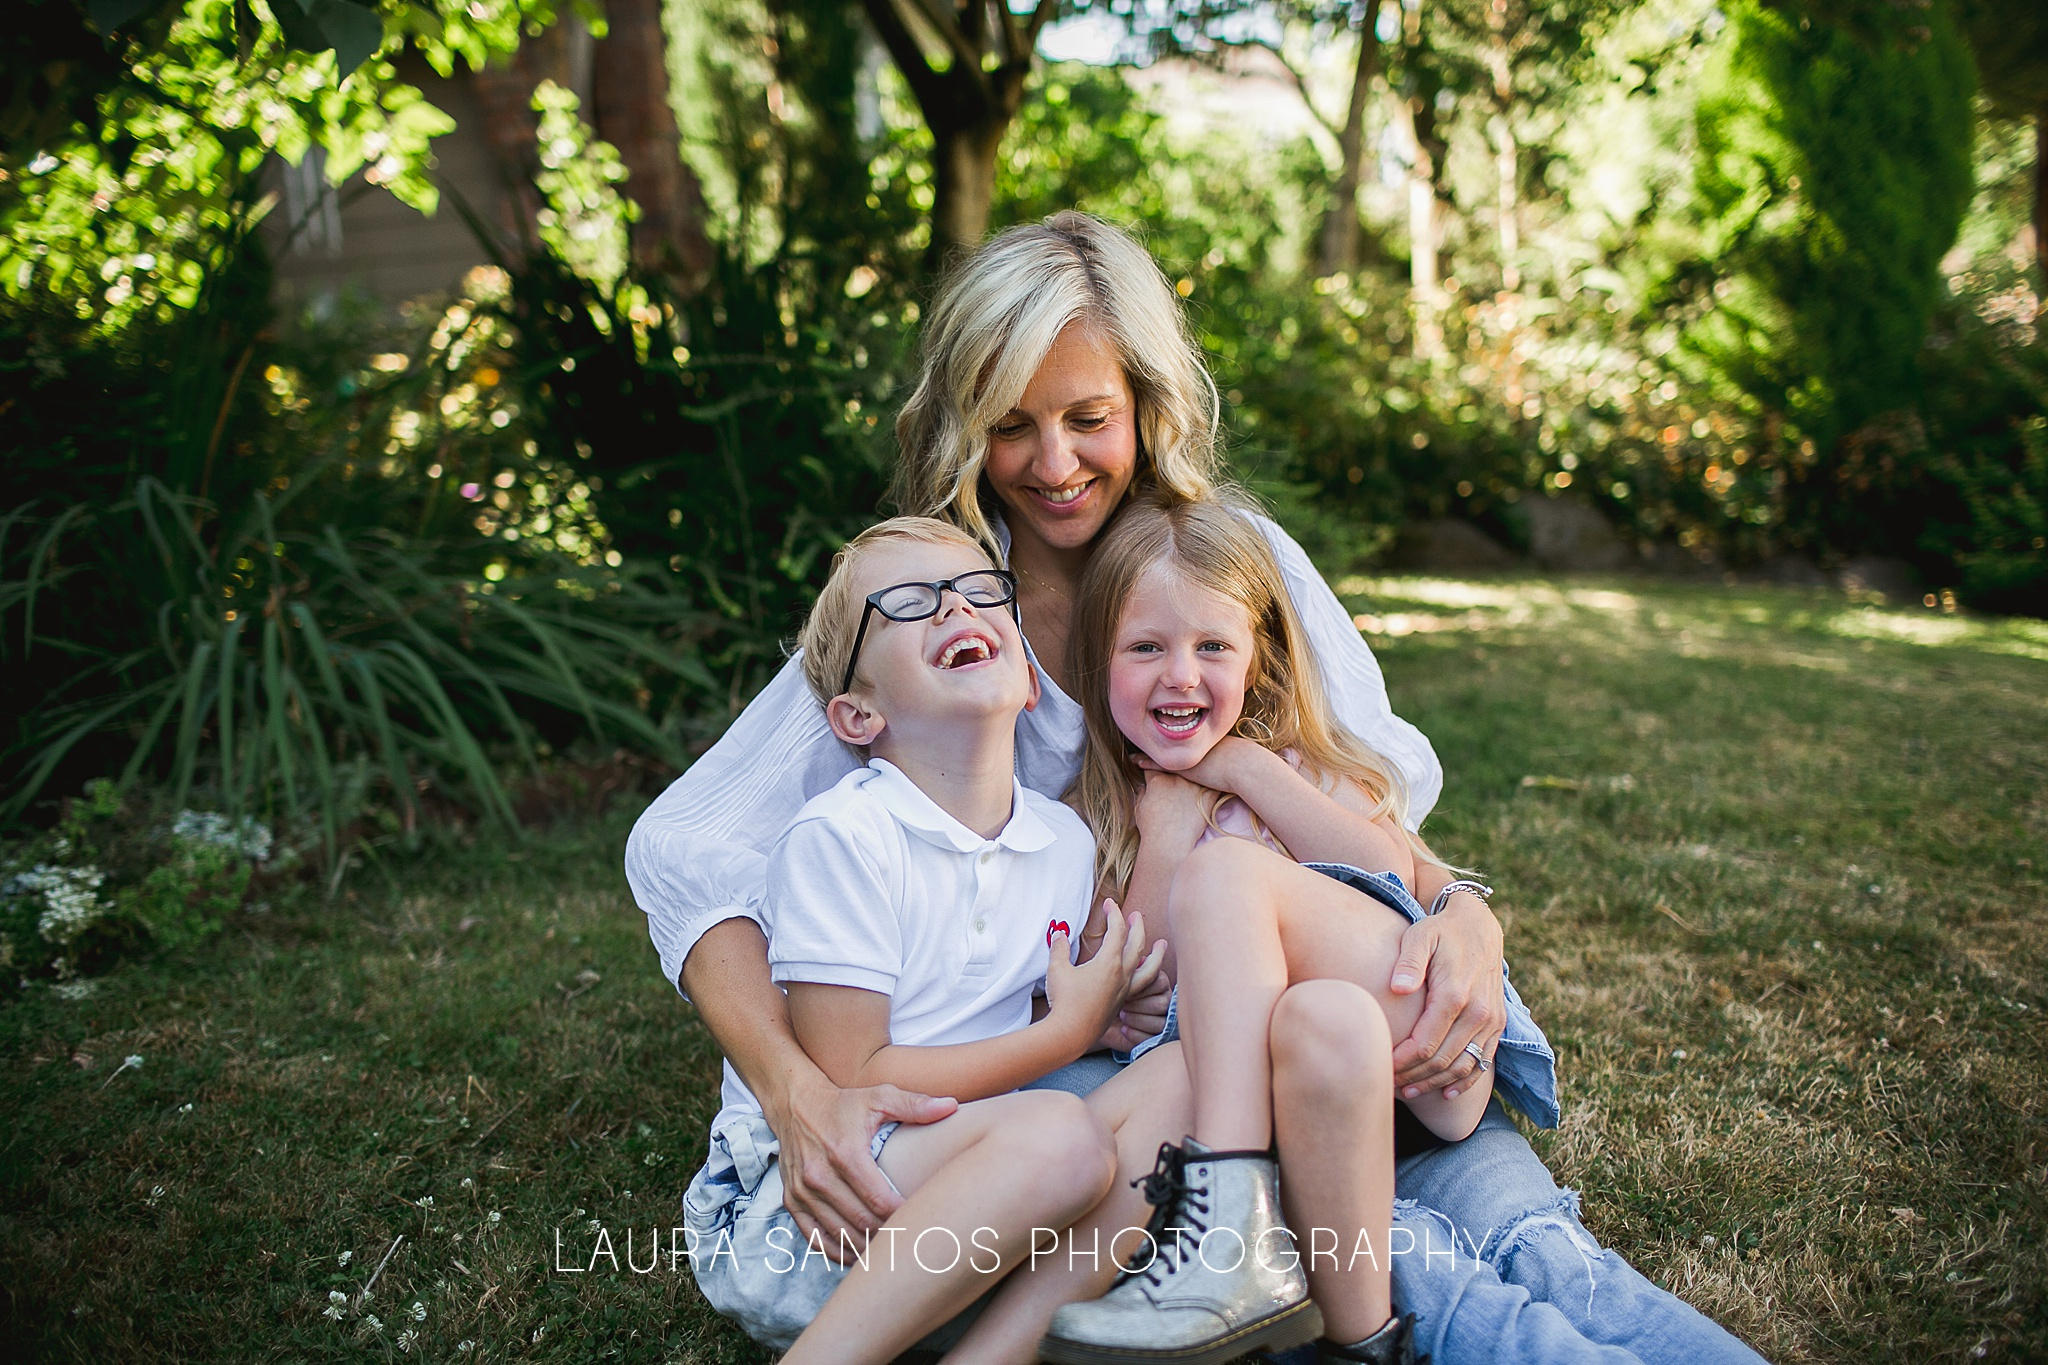 Laura Santos Photography Portland Oregon Family Photographer_1184.jpg